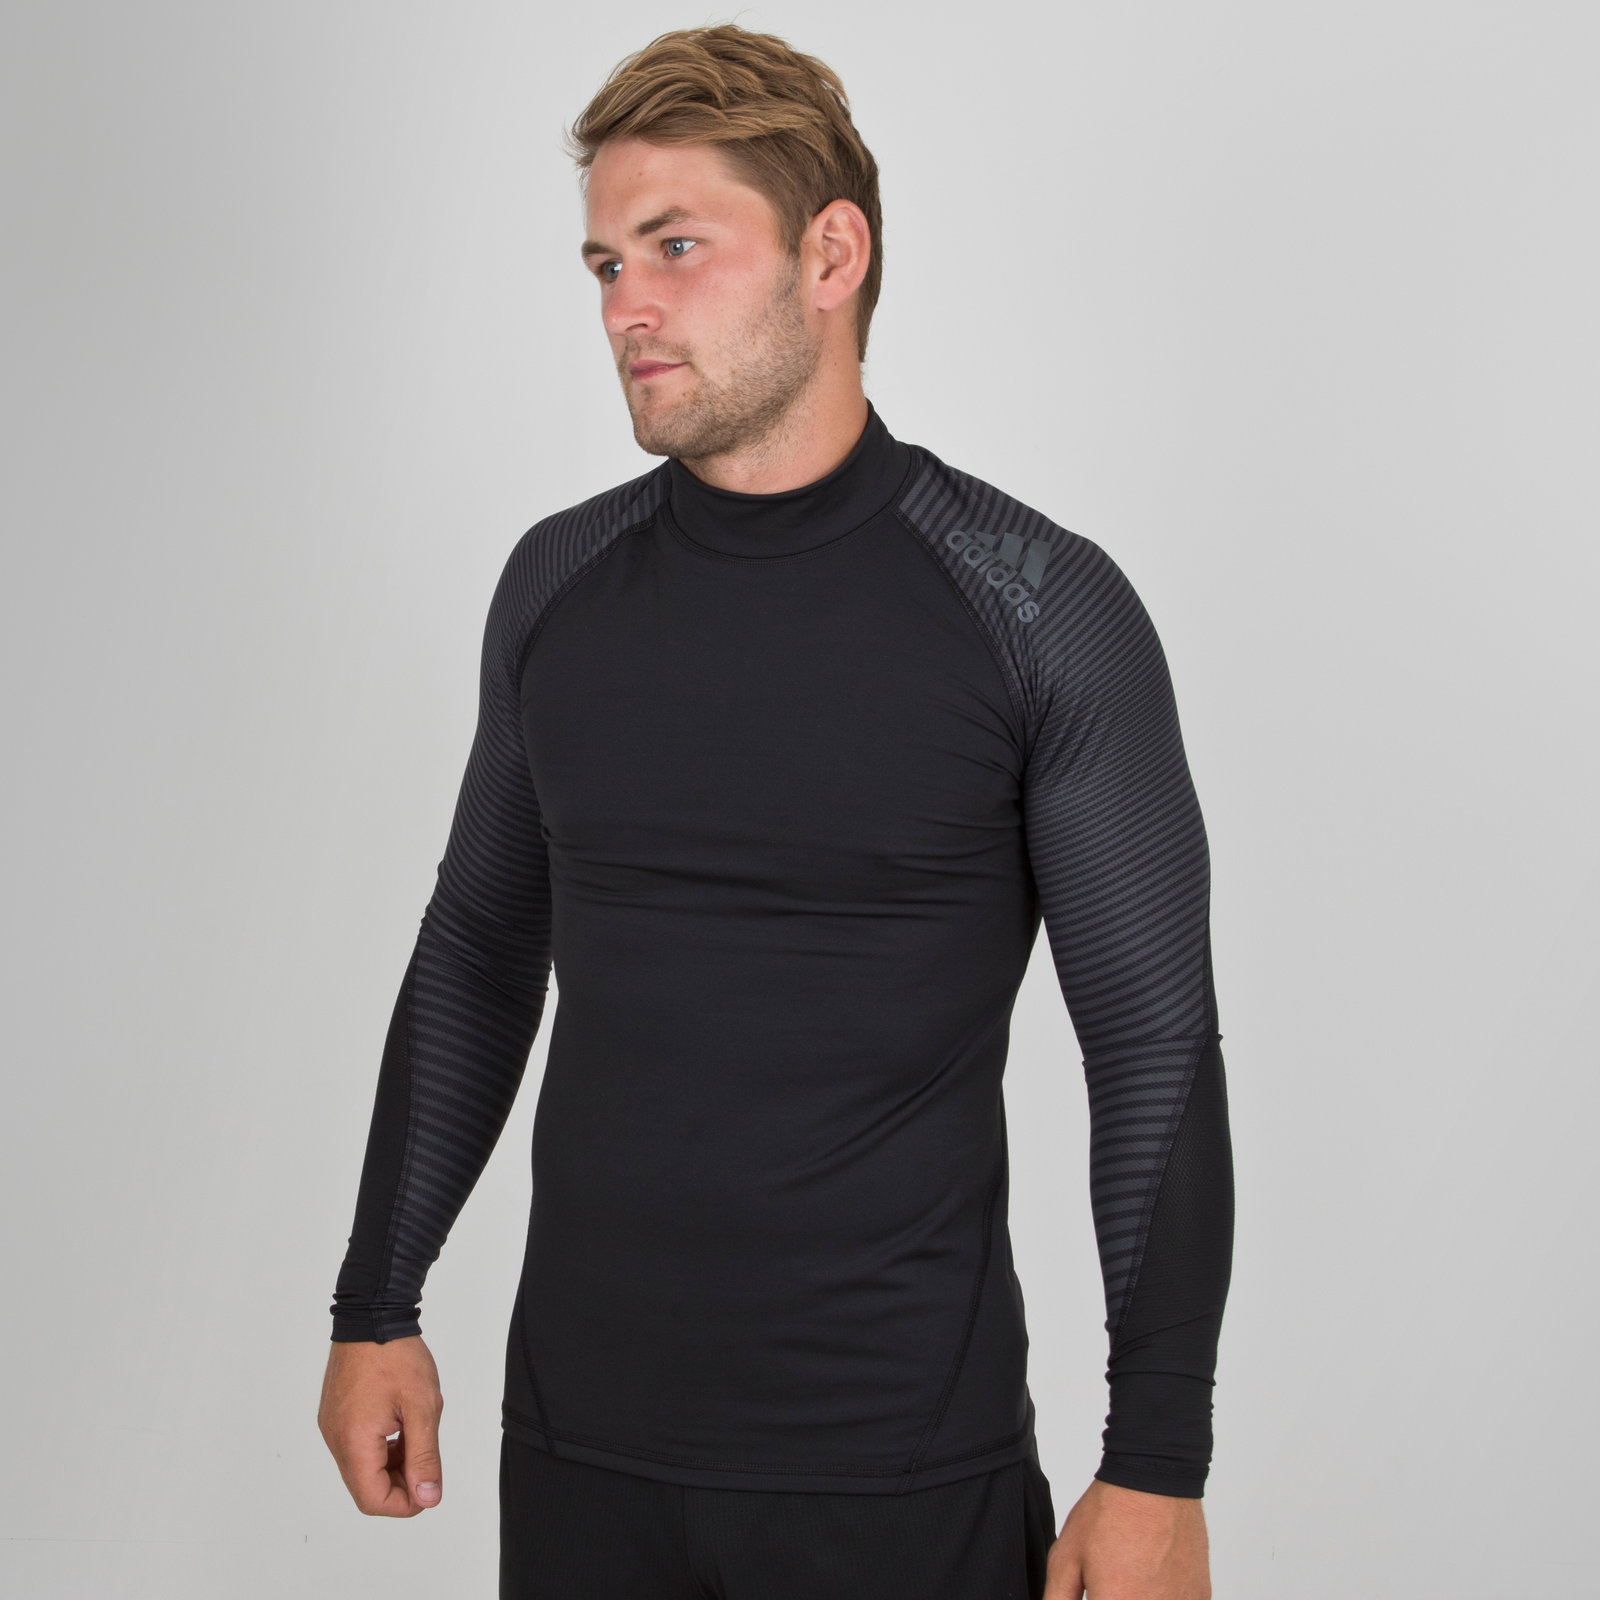 c5434897d adidas Mens Alphaskin SPR Climawarm Long Sleeve Compression T-Shirt Black